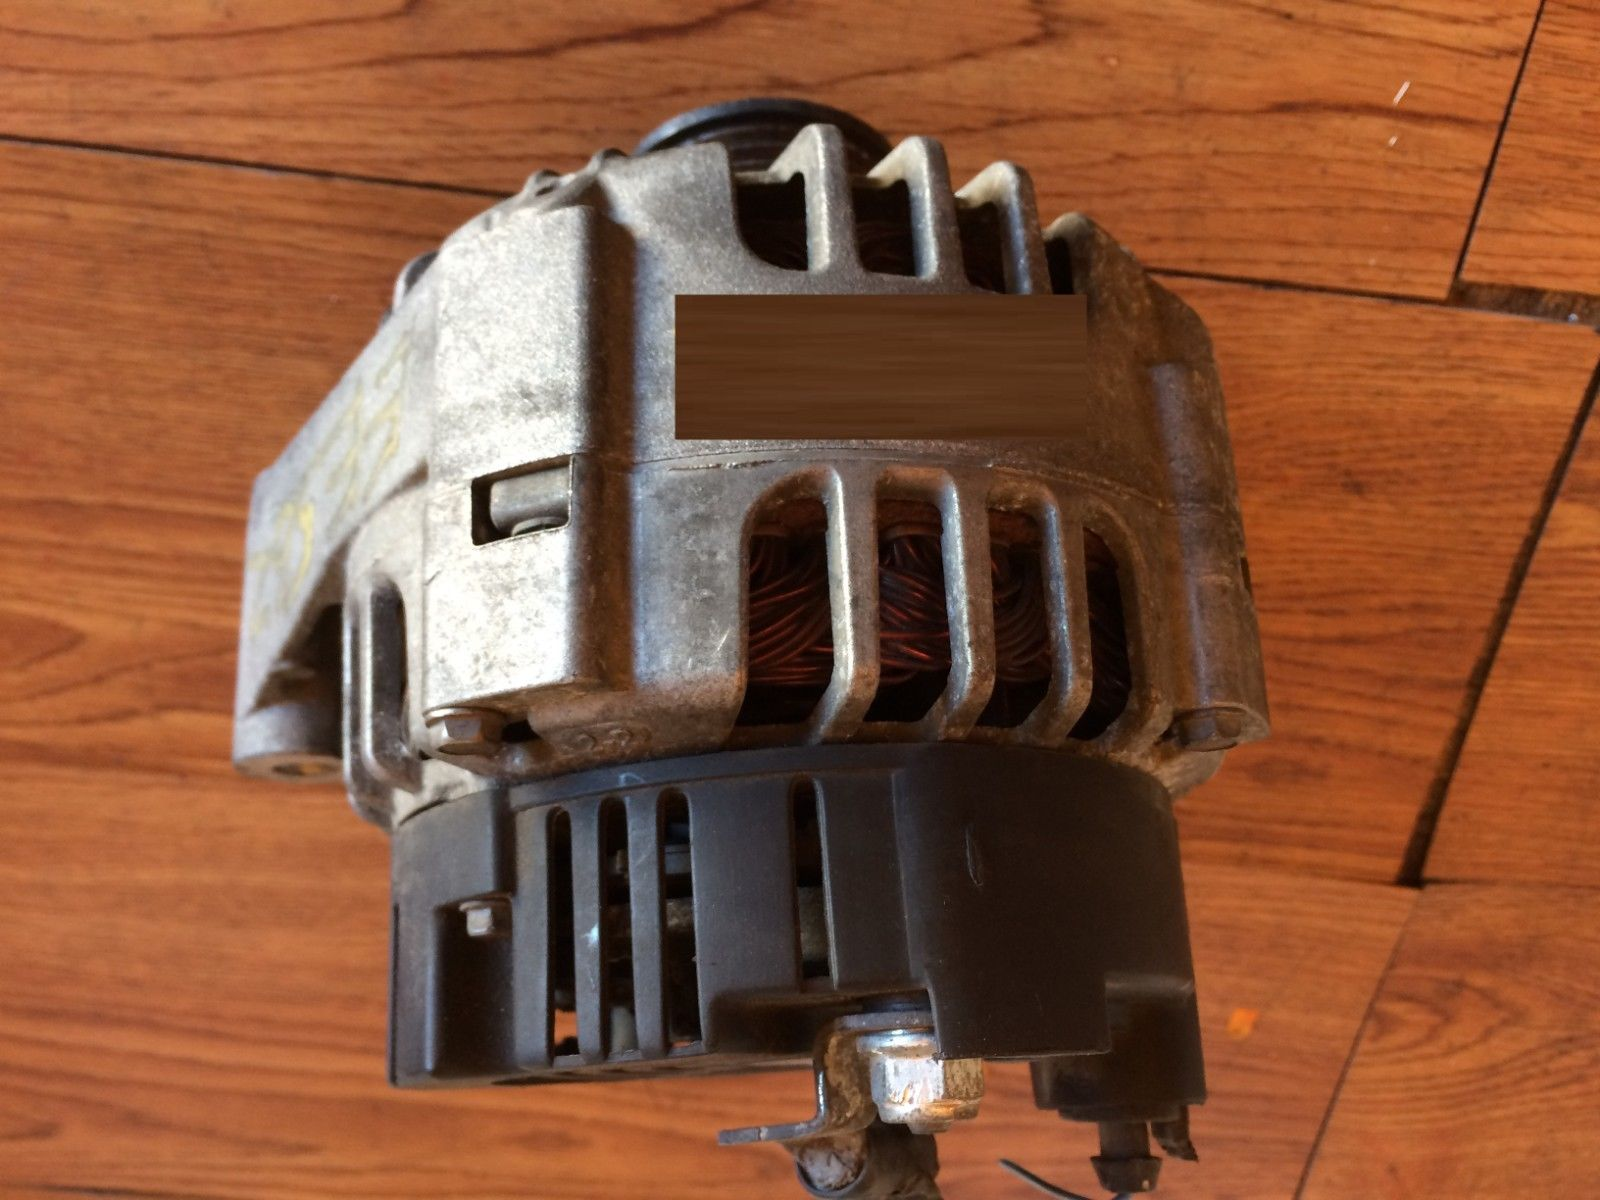 2001 MERCEDES-BENZ C320 ALTERNATOR ASSEMBLY MODULE OEM A 011 154 64 02 A 011 154 64 02